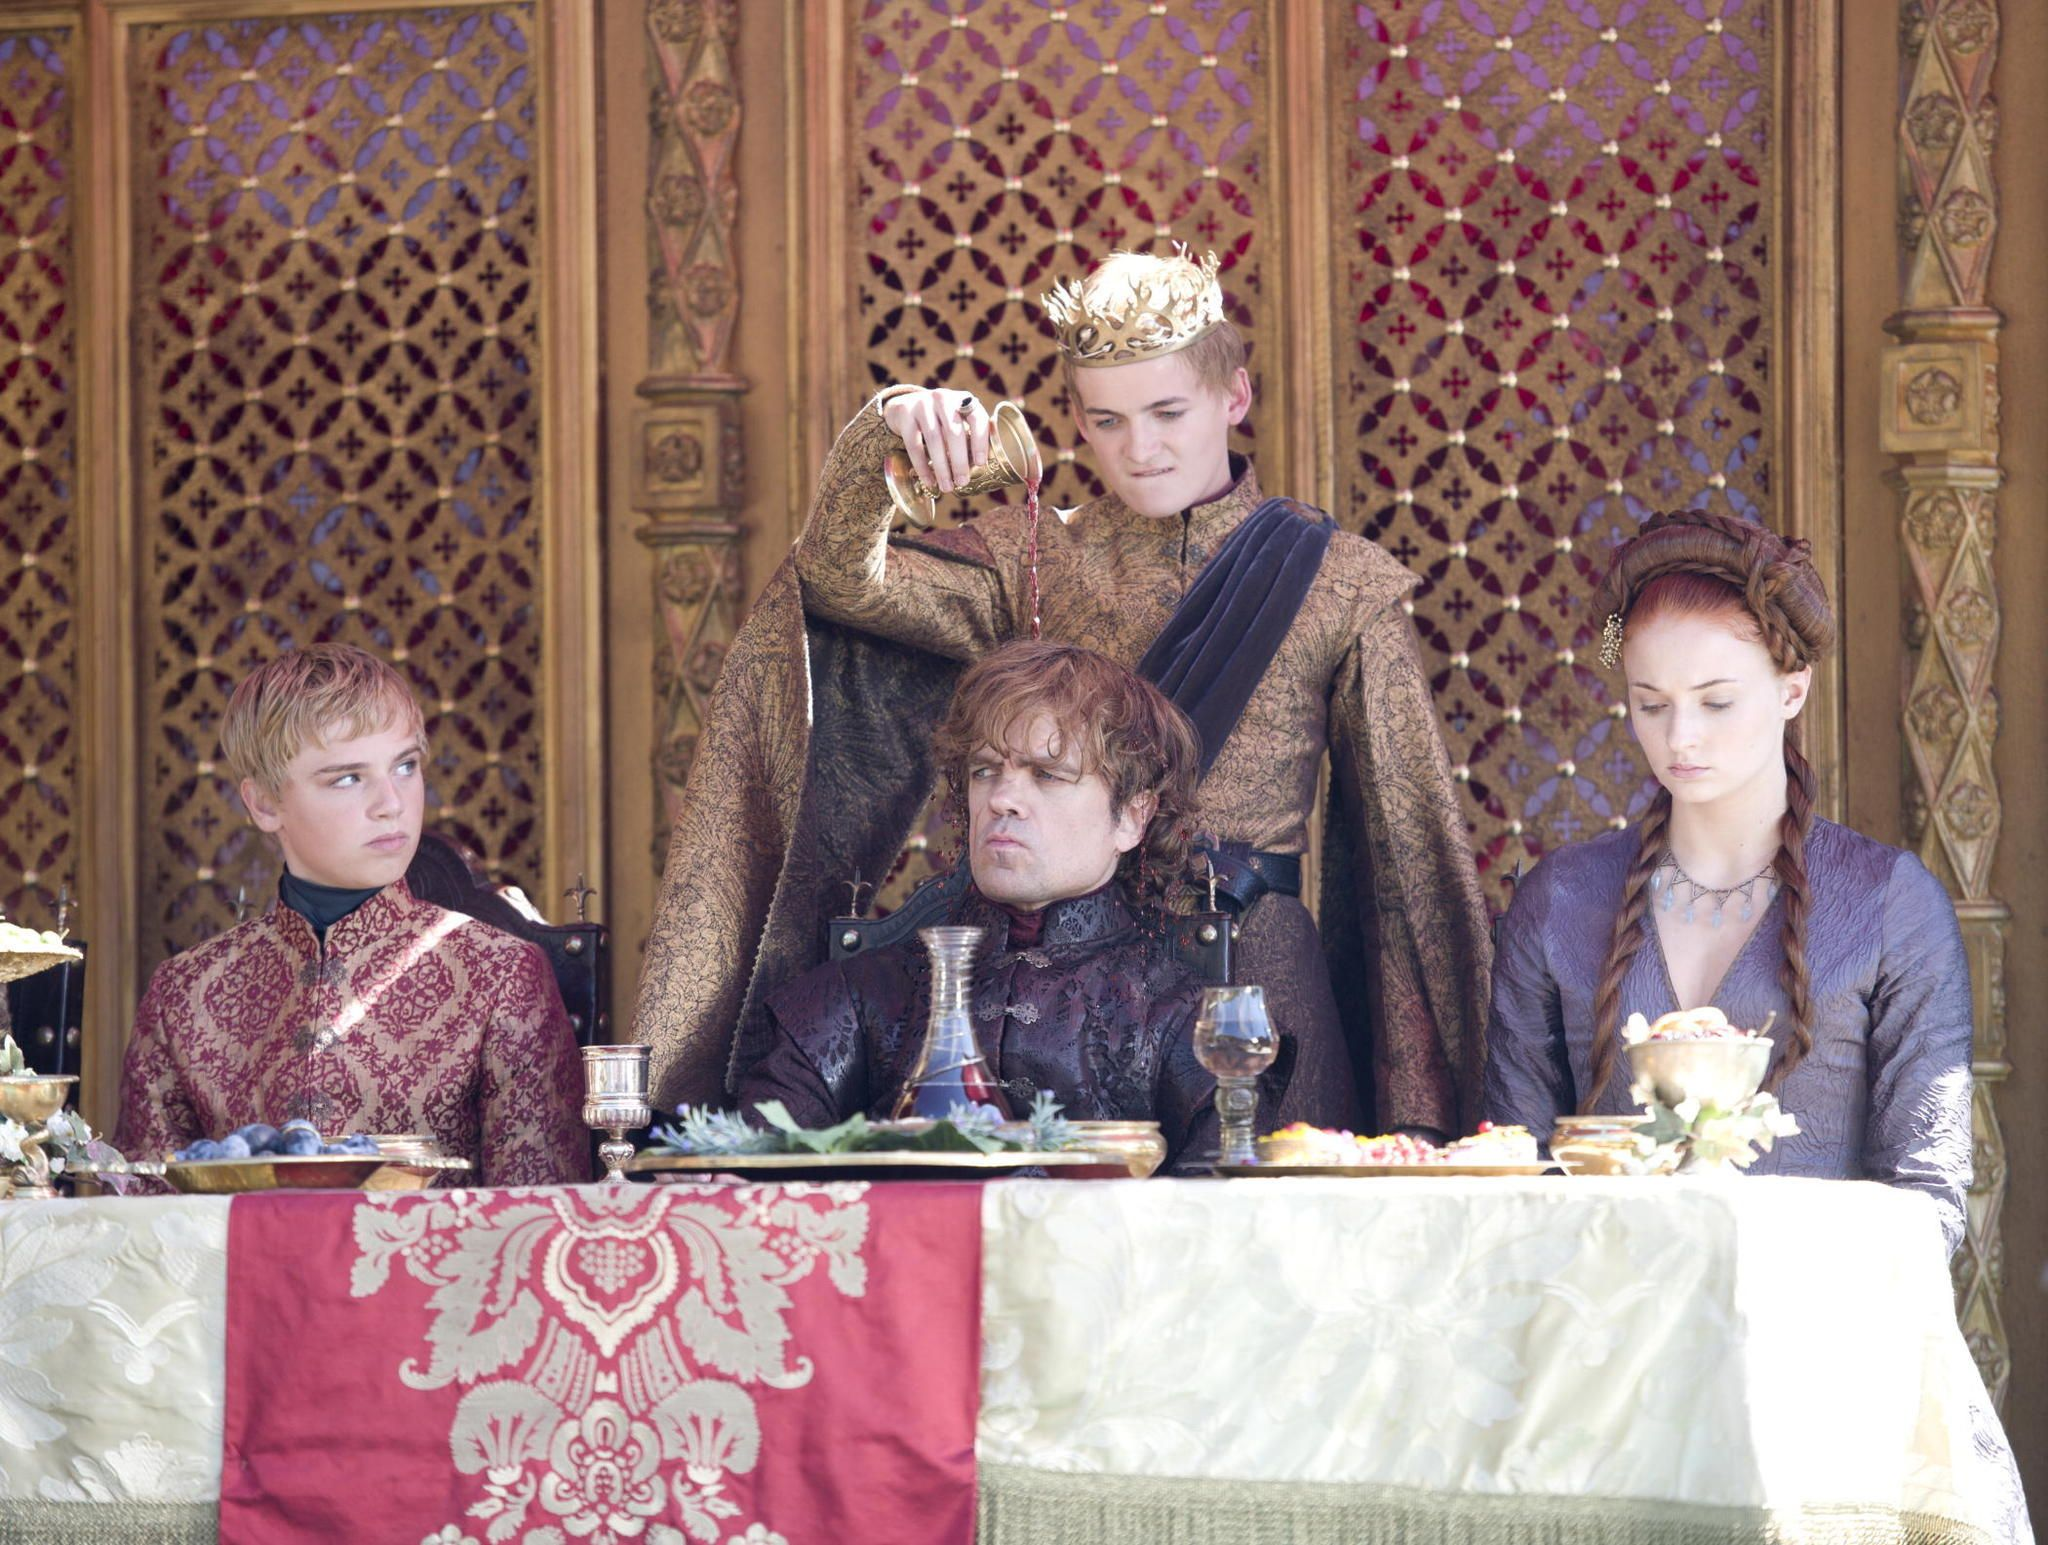 Game Of Thrones Season 4 Episode 2 The Lion And The Rose